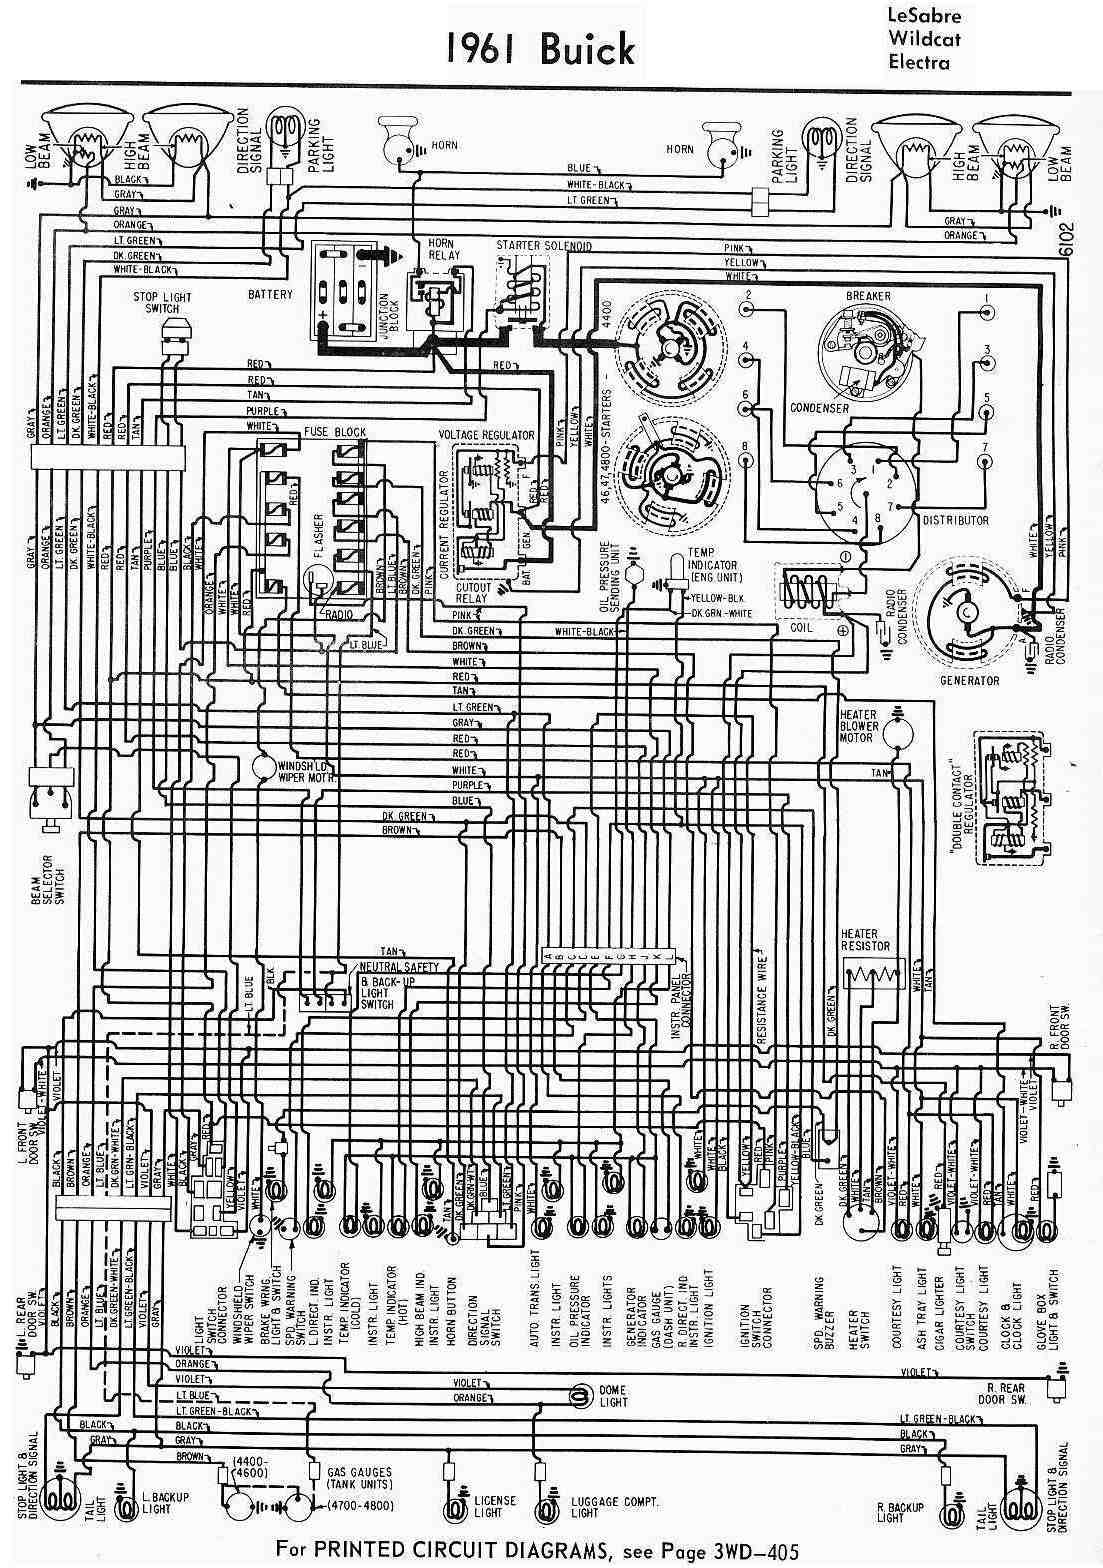 small resolution of 1961 chrysler wiring diagram wiring diagrams posts 1961 chrysler wiring diagram